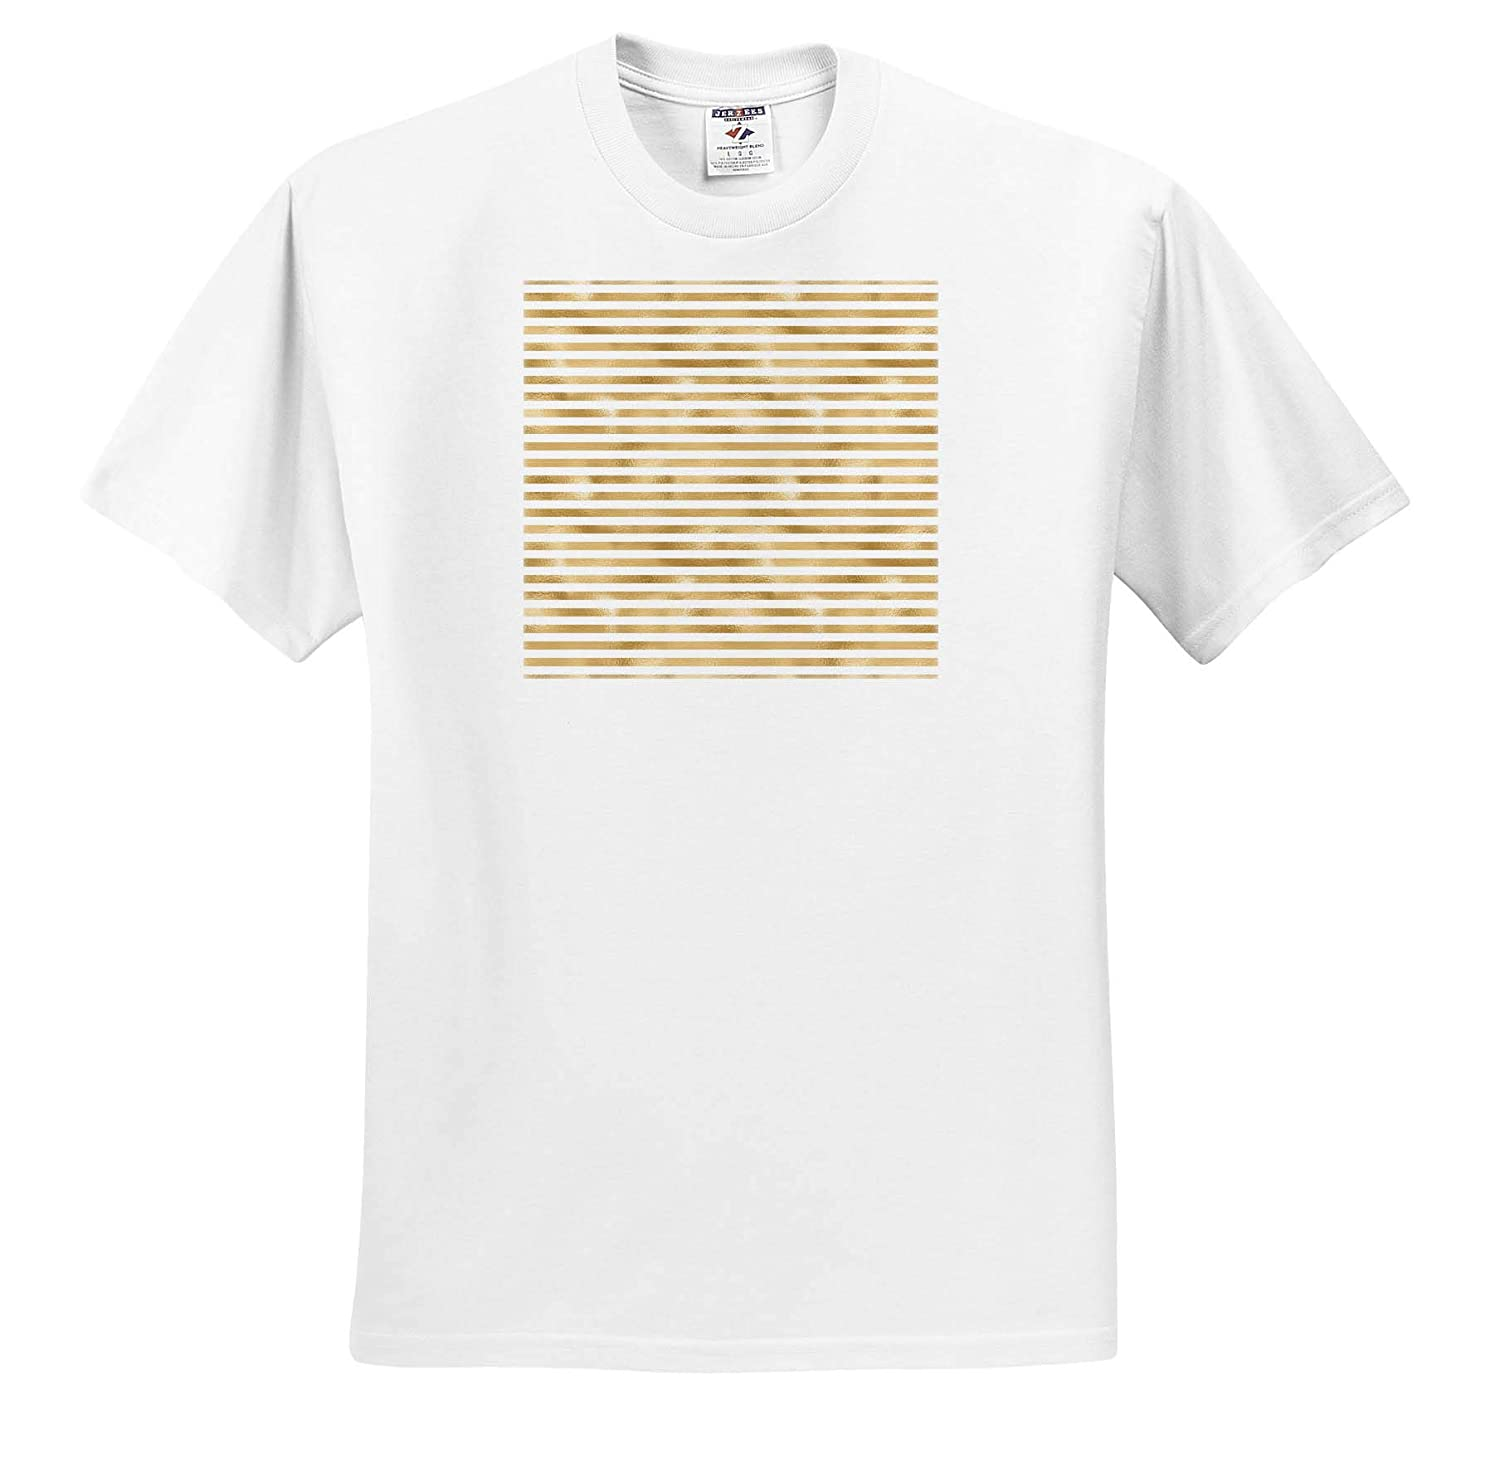 Patterns Glam White and Gold Color Stripes Pattern T-Shirts 3dRose Anne Marie Baugh